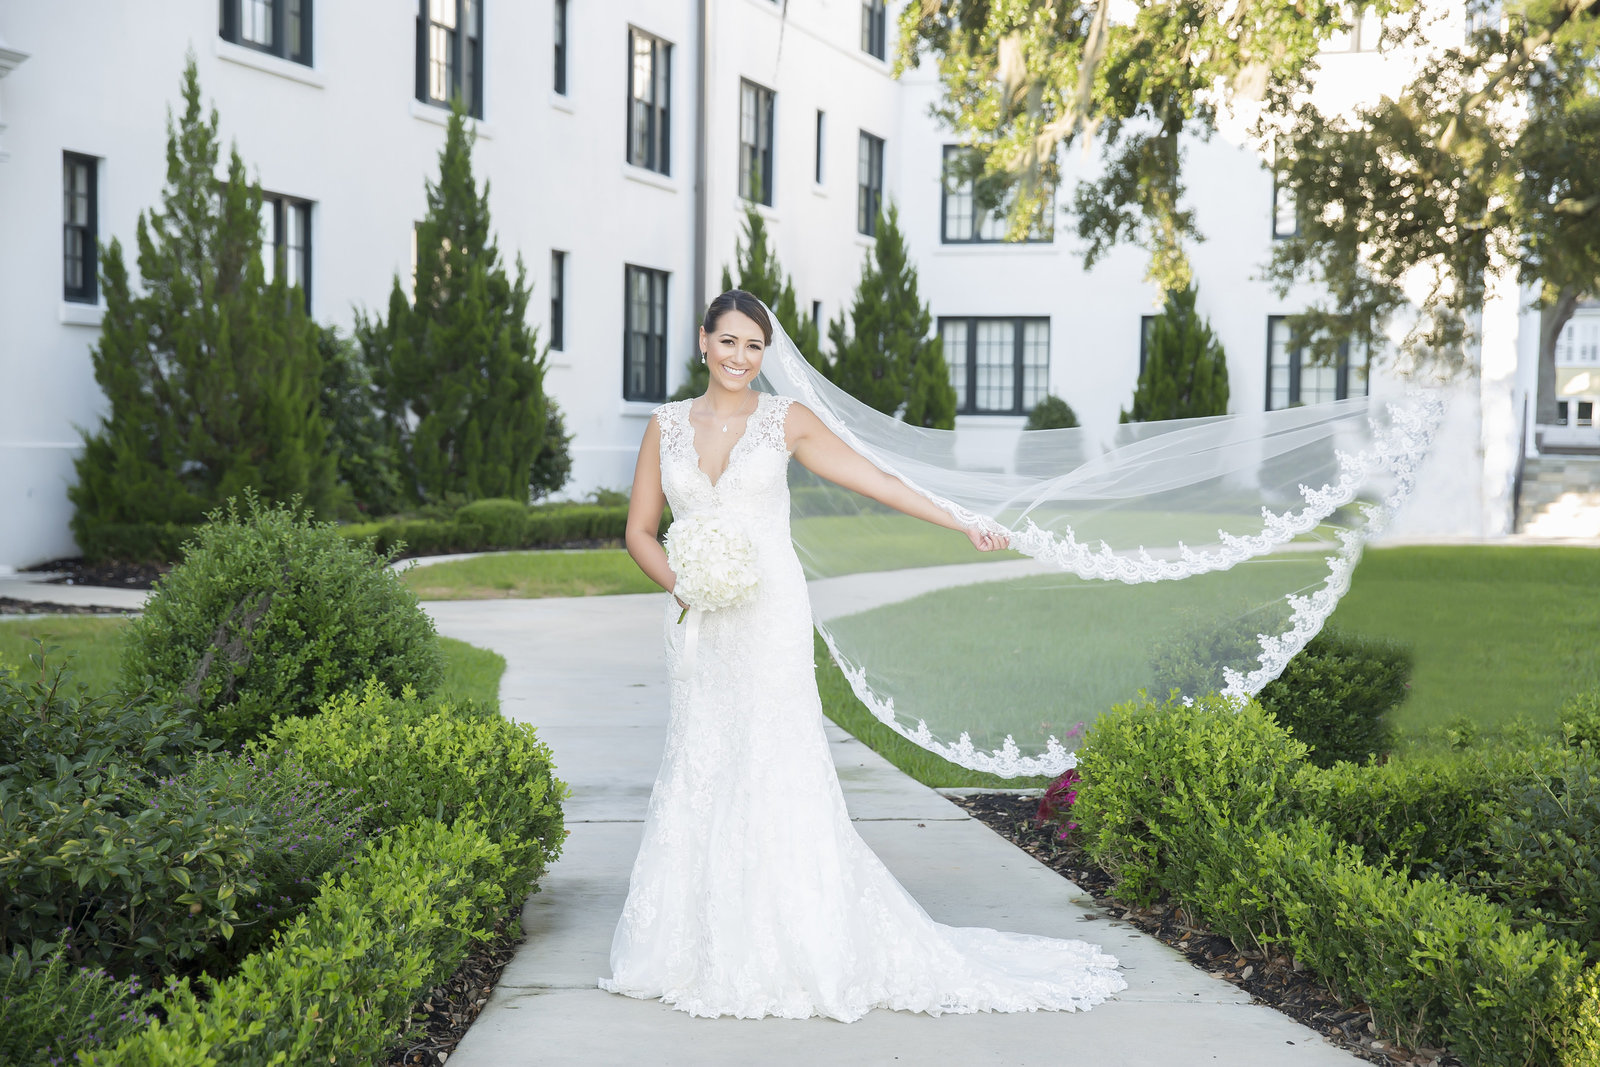 Bridal Portrait Photographers in Biloxi